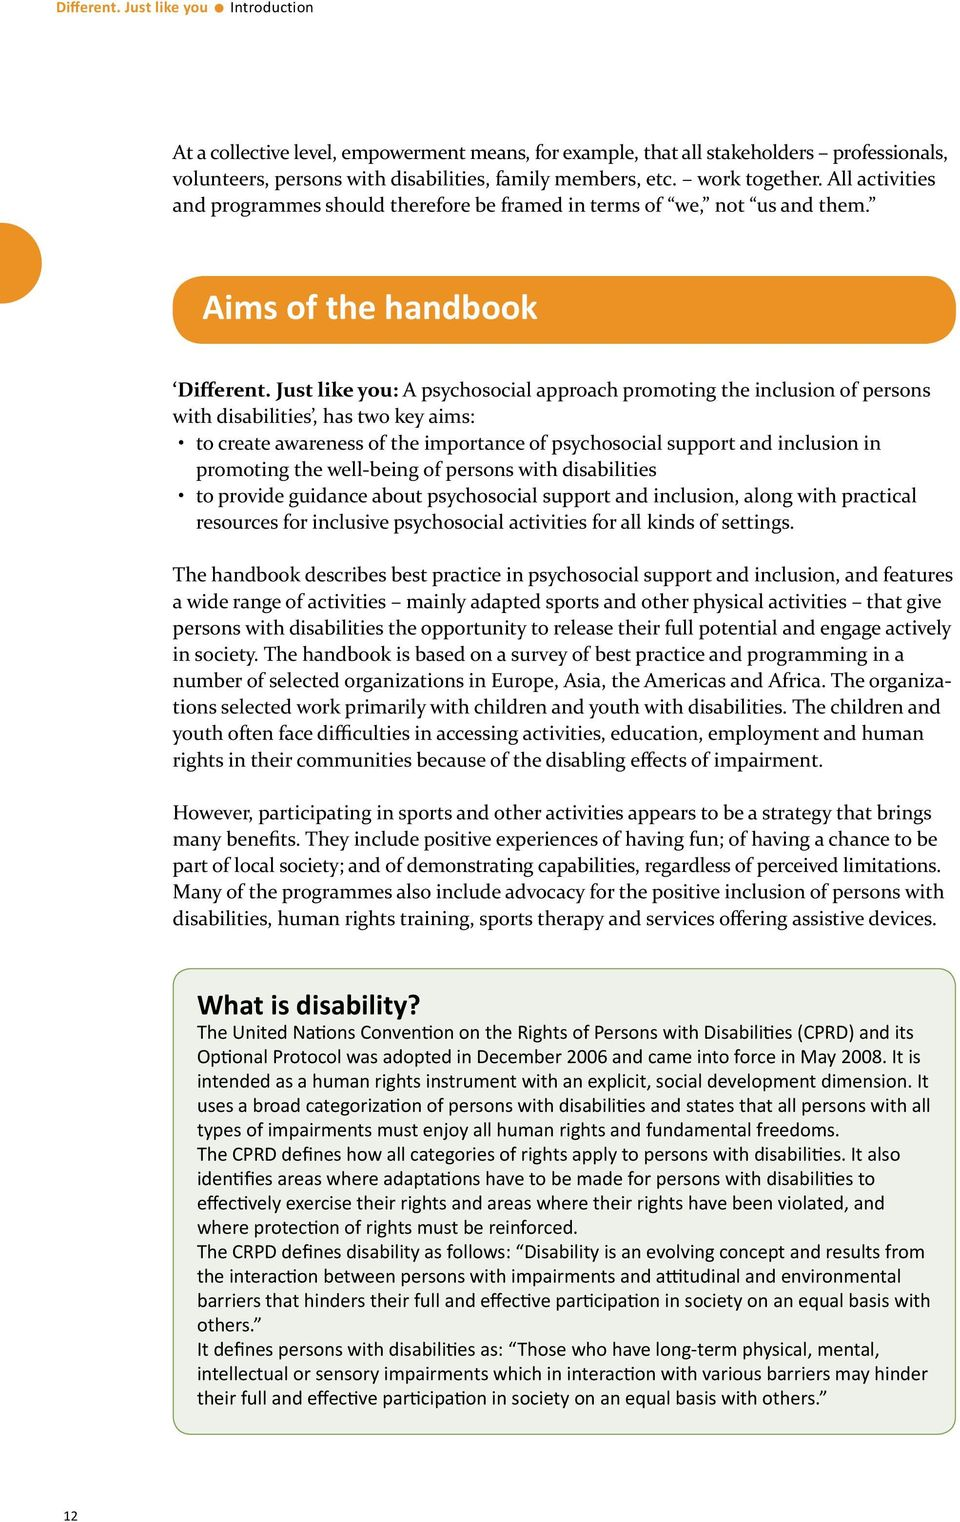 Just like you: A psychosocial approach promoting the inclusion of persons with disabilities, has two key aims: to create awareness of the importance of psychosocial support and inclusion in promoting